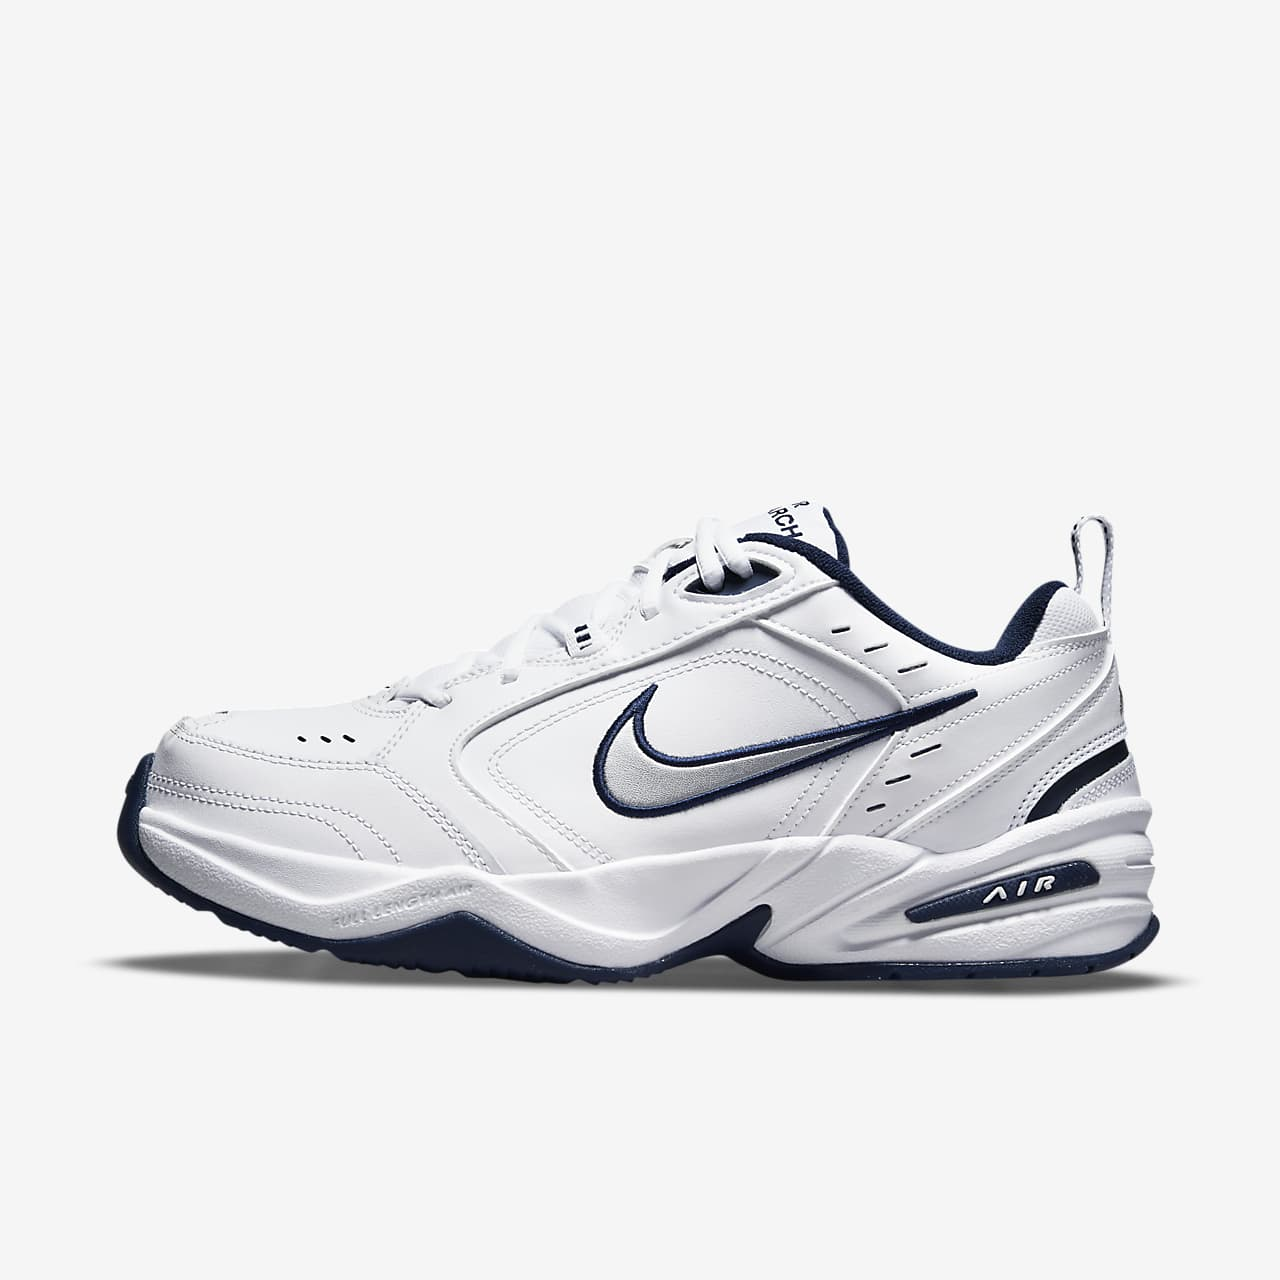 ... Nike Air Monarch IV (Extra Wide) Unisex Training Shoe